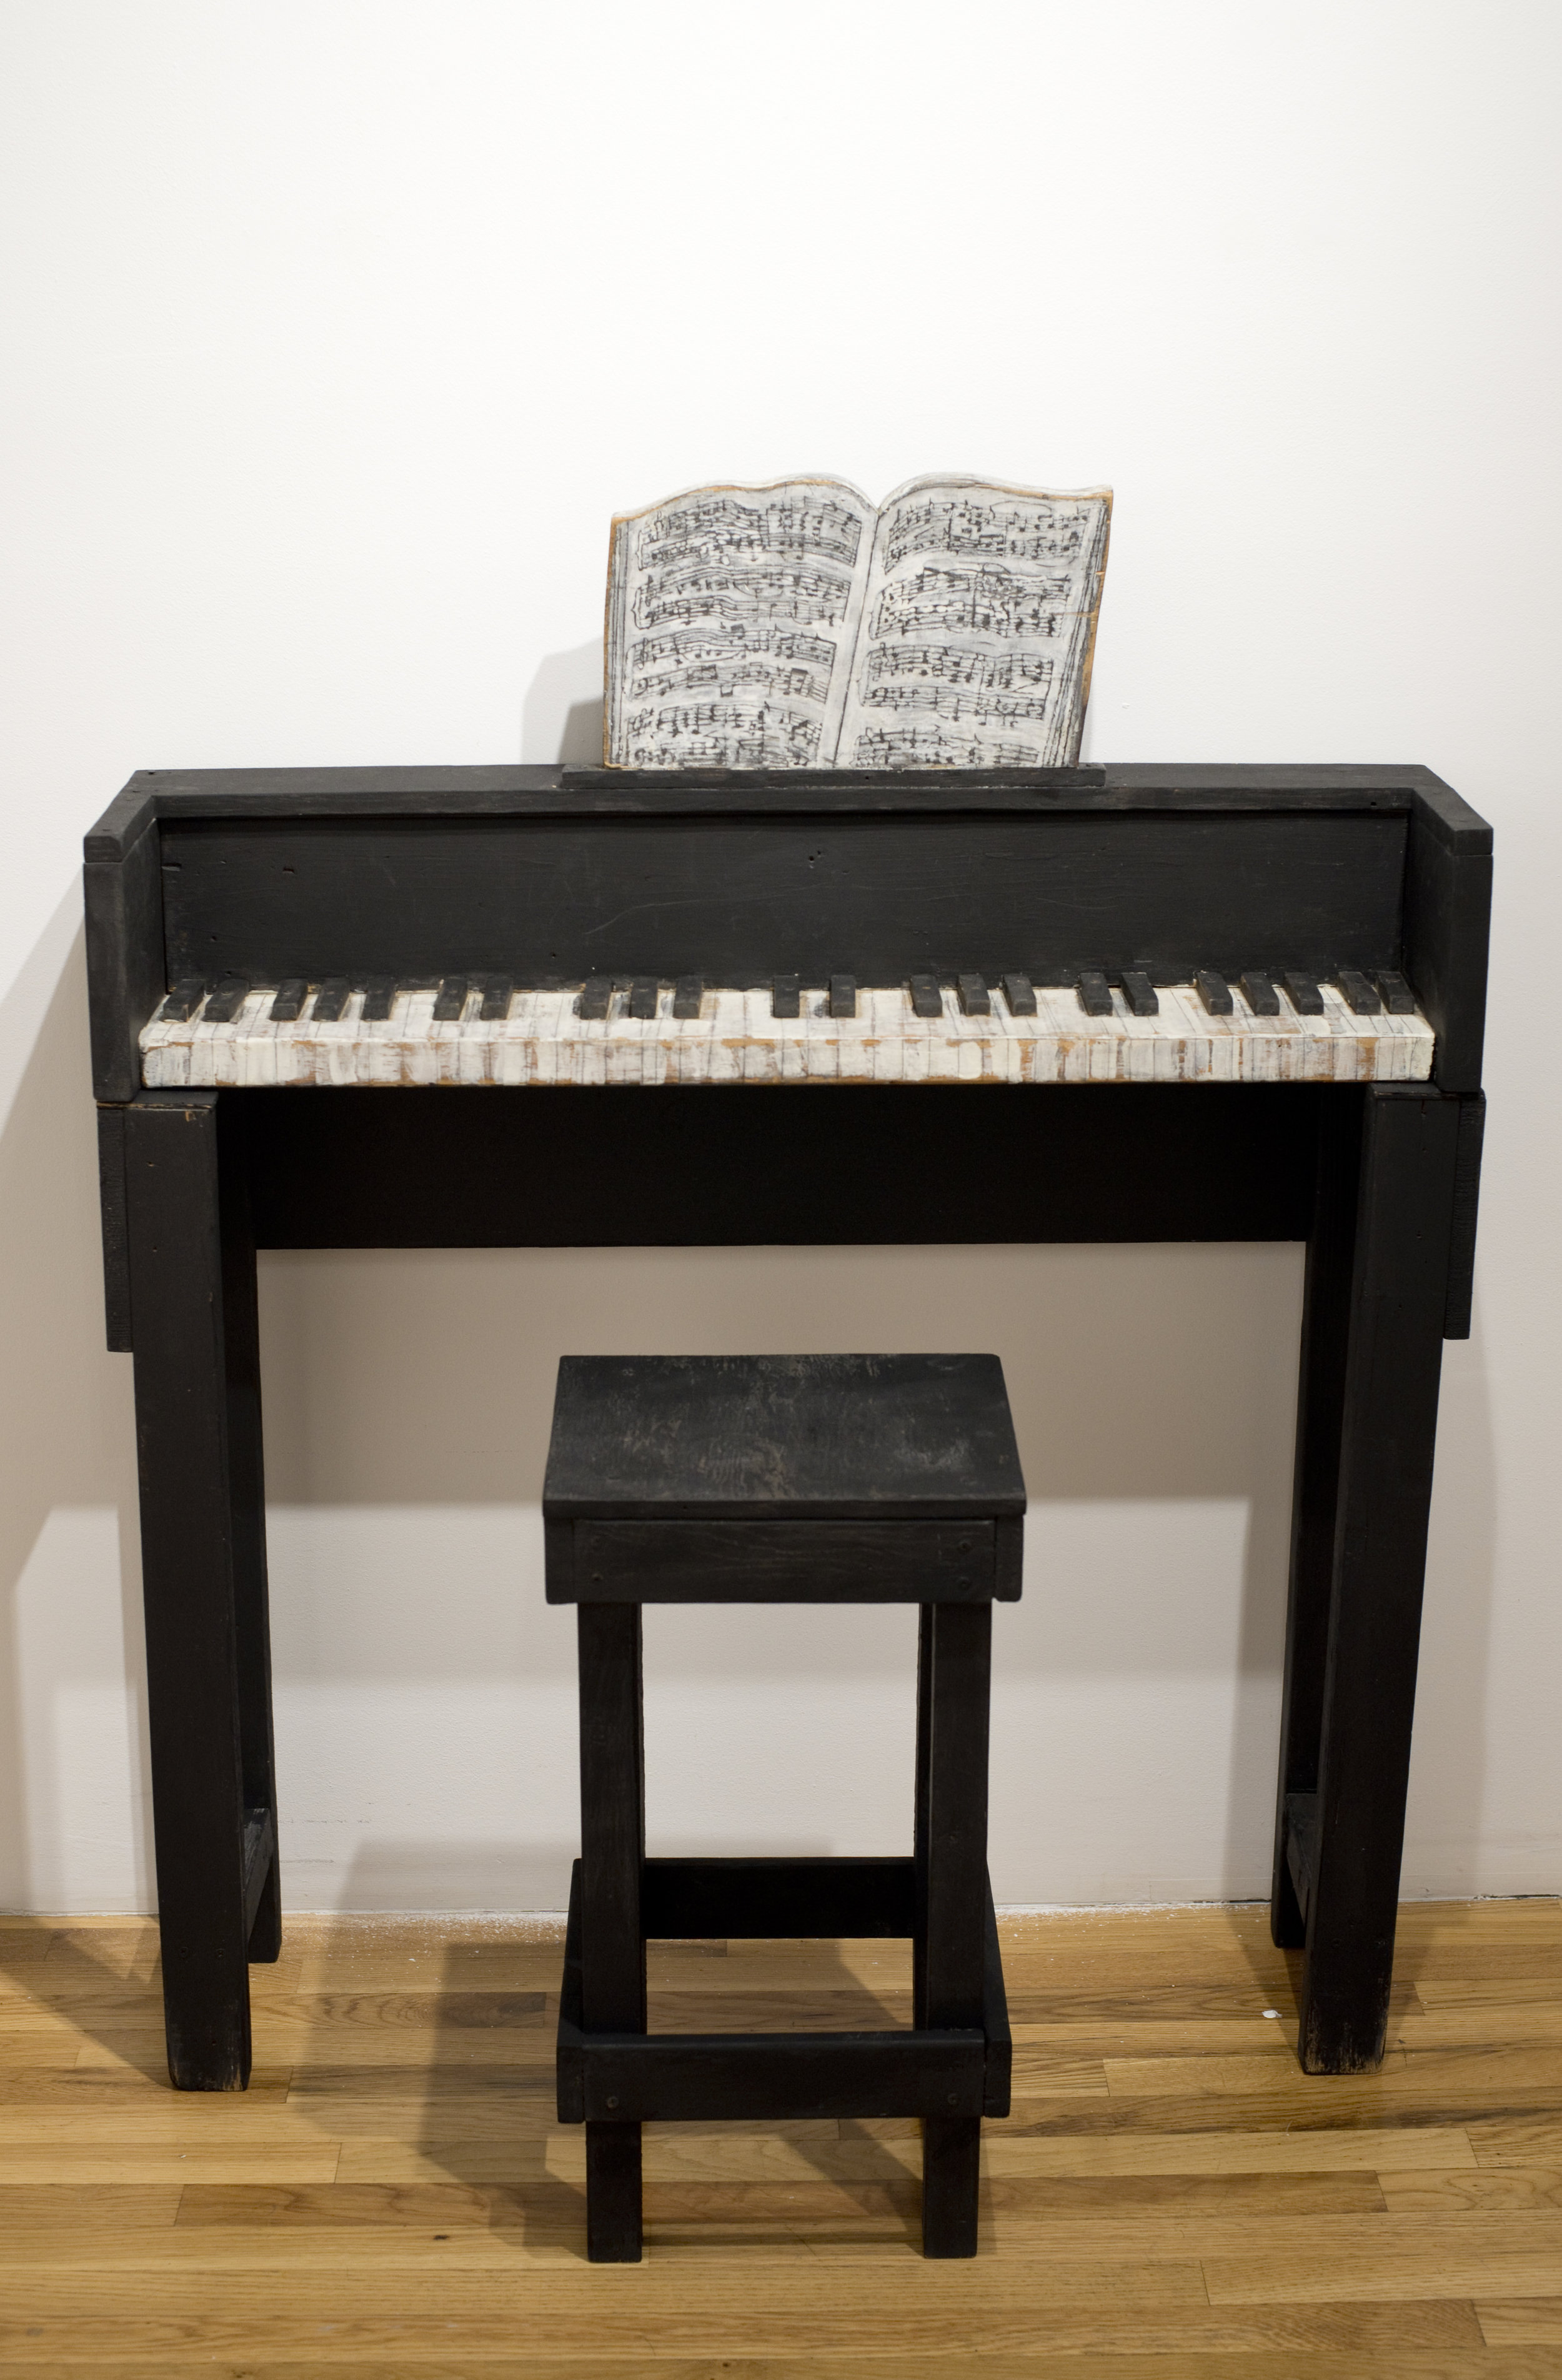 Jenny Snider,  SOLO: Ev'ry Time We Say Goodbye,  1999, Acrylic and pencil on wood, Piano: 48h x 39w x 10.5d in. Stool: 24h x 12.5w x 11d in.